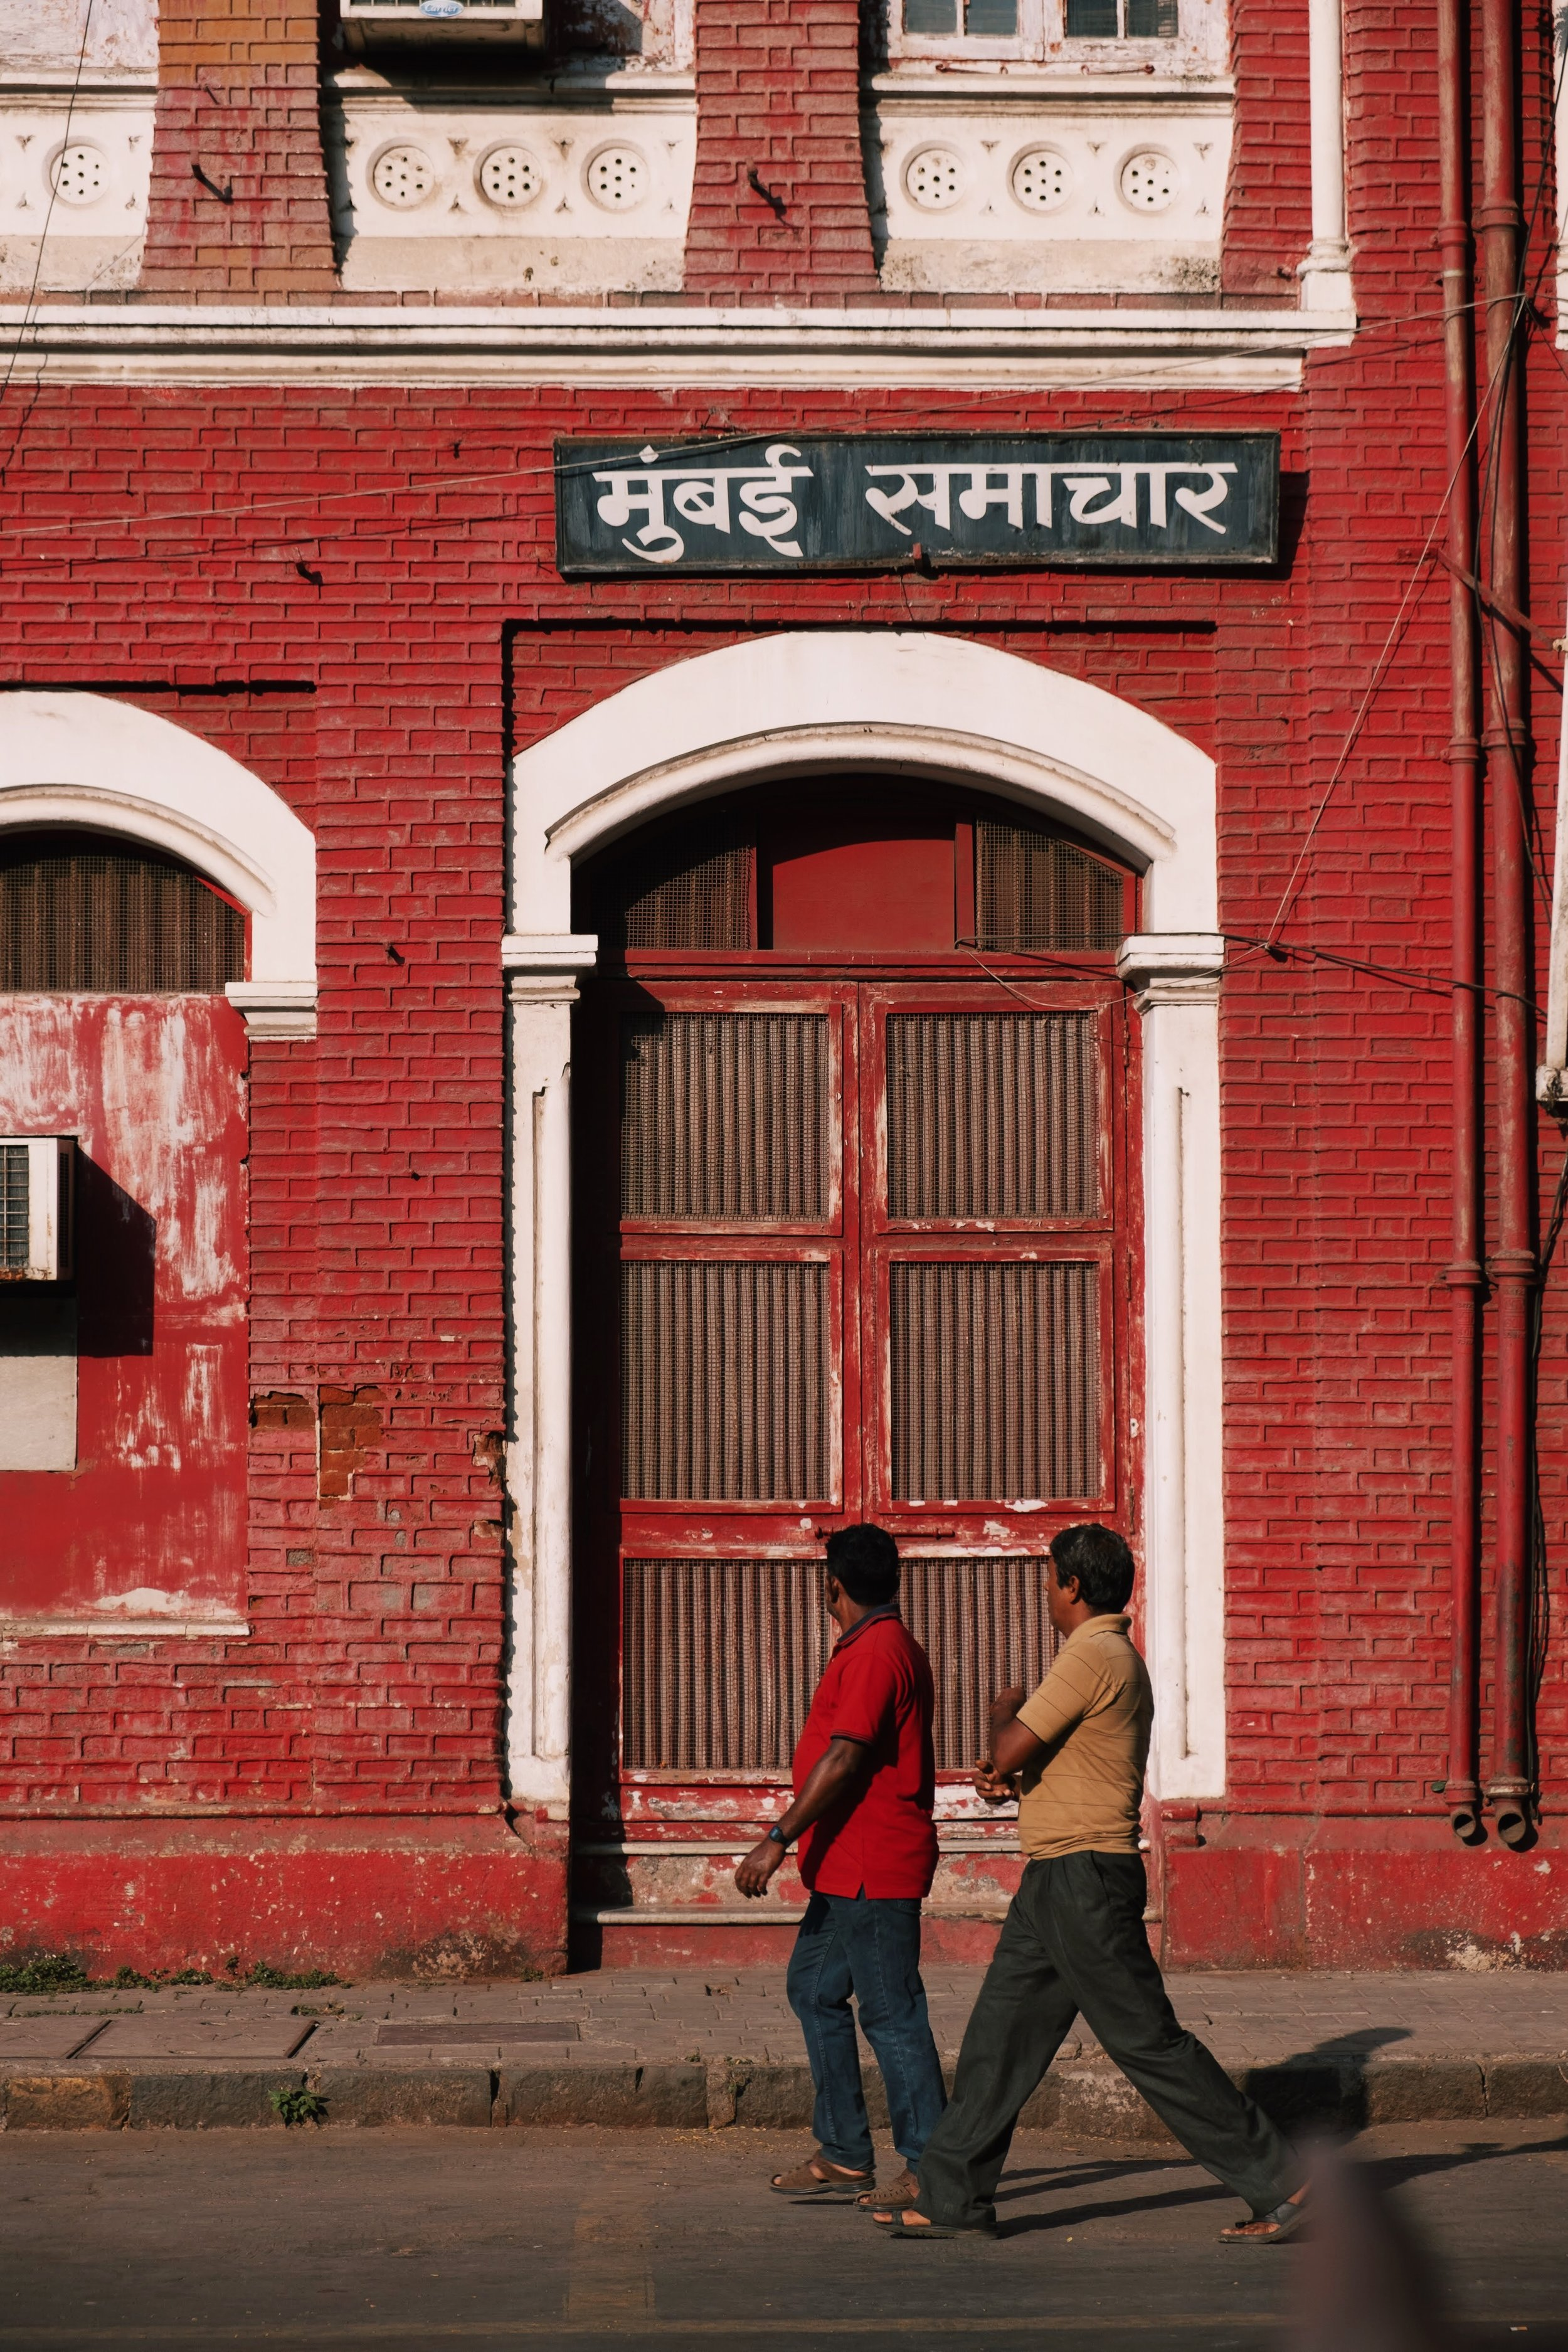 people walking past a red building in India